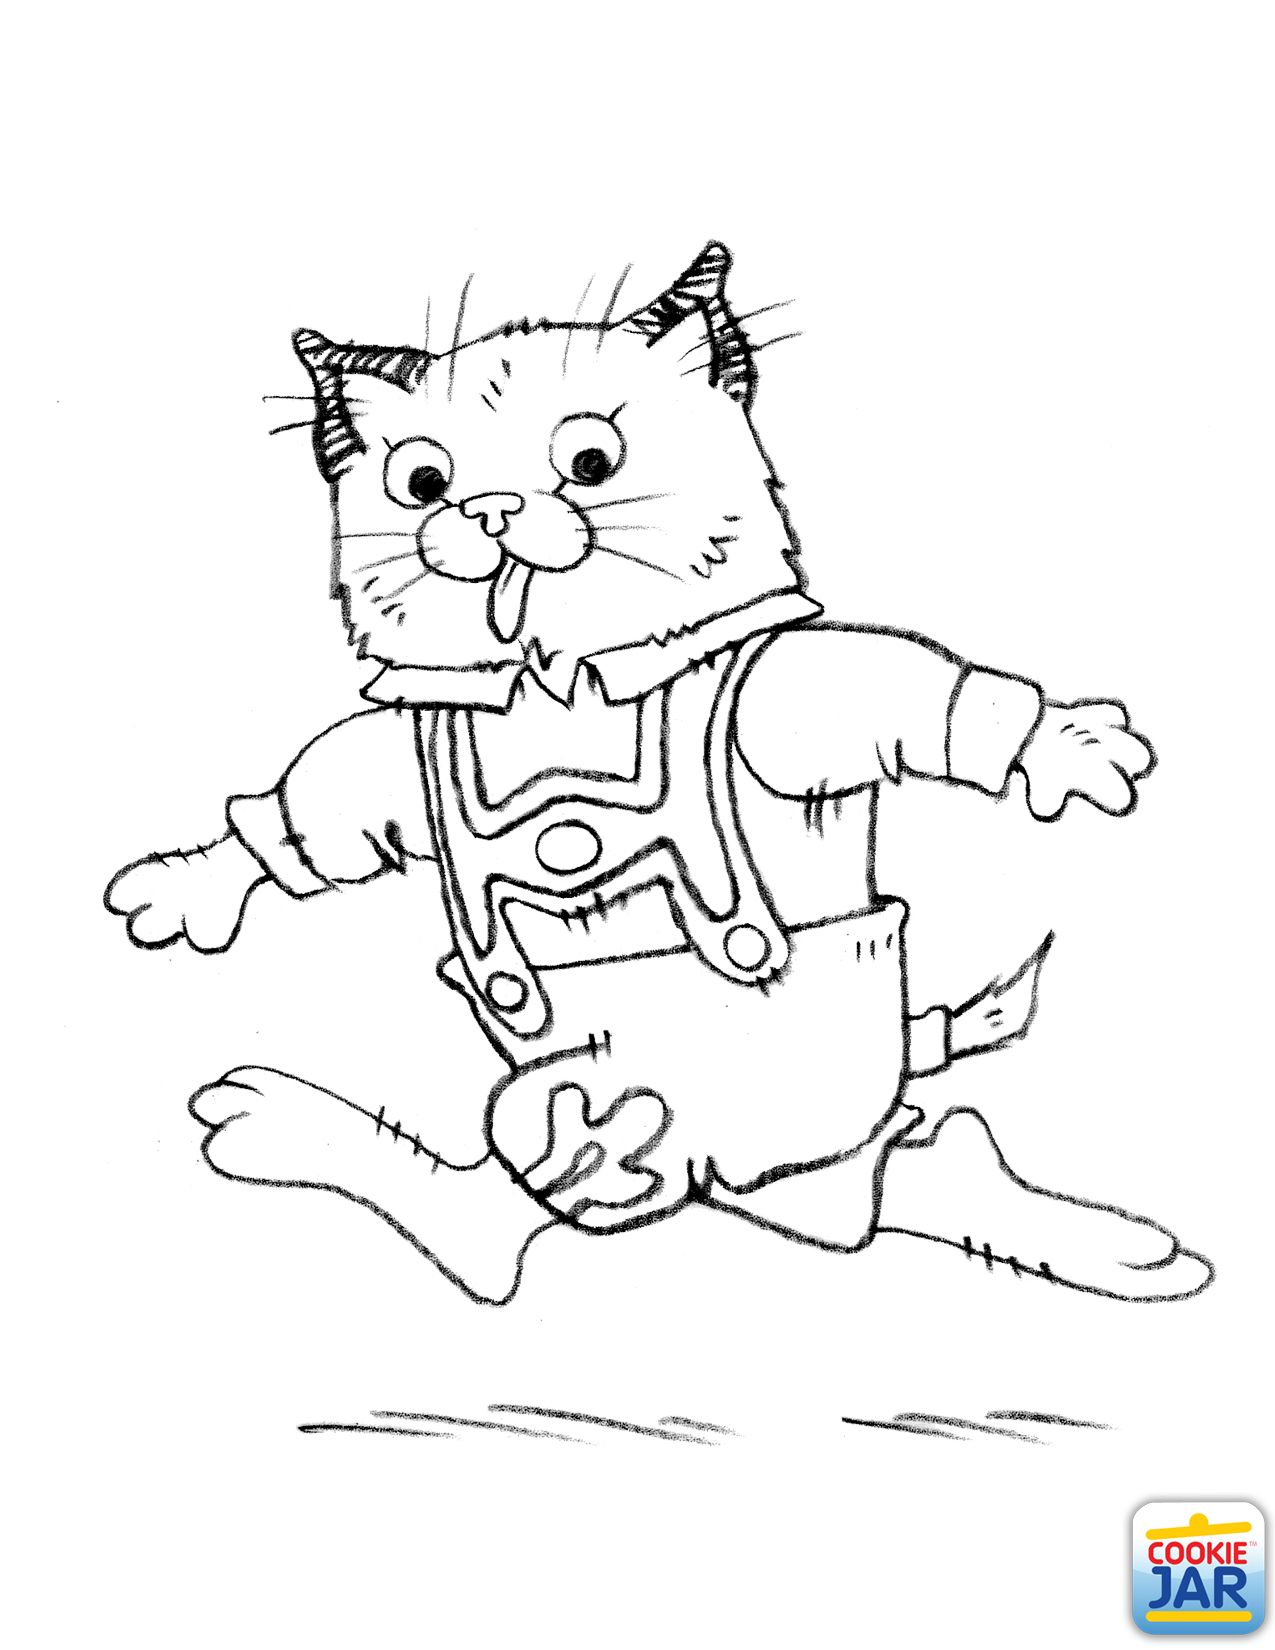 Huckle Cat Richard Scarry If I Ever Got A Tattoo Richard Scarry Halloween Coloring Pages Halloween Coloring